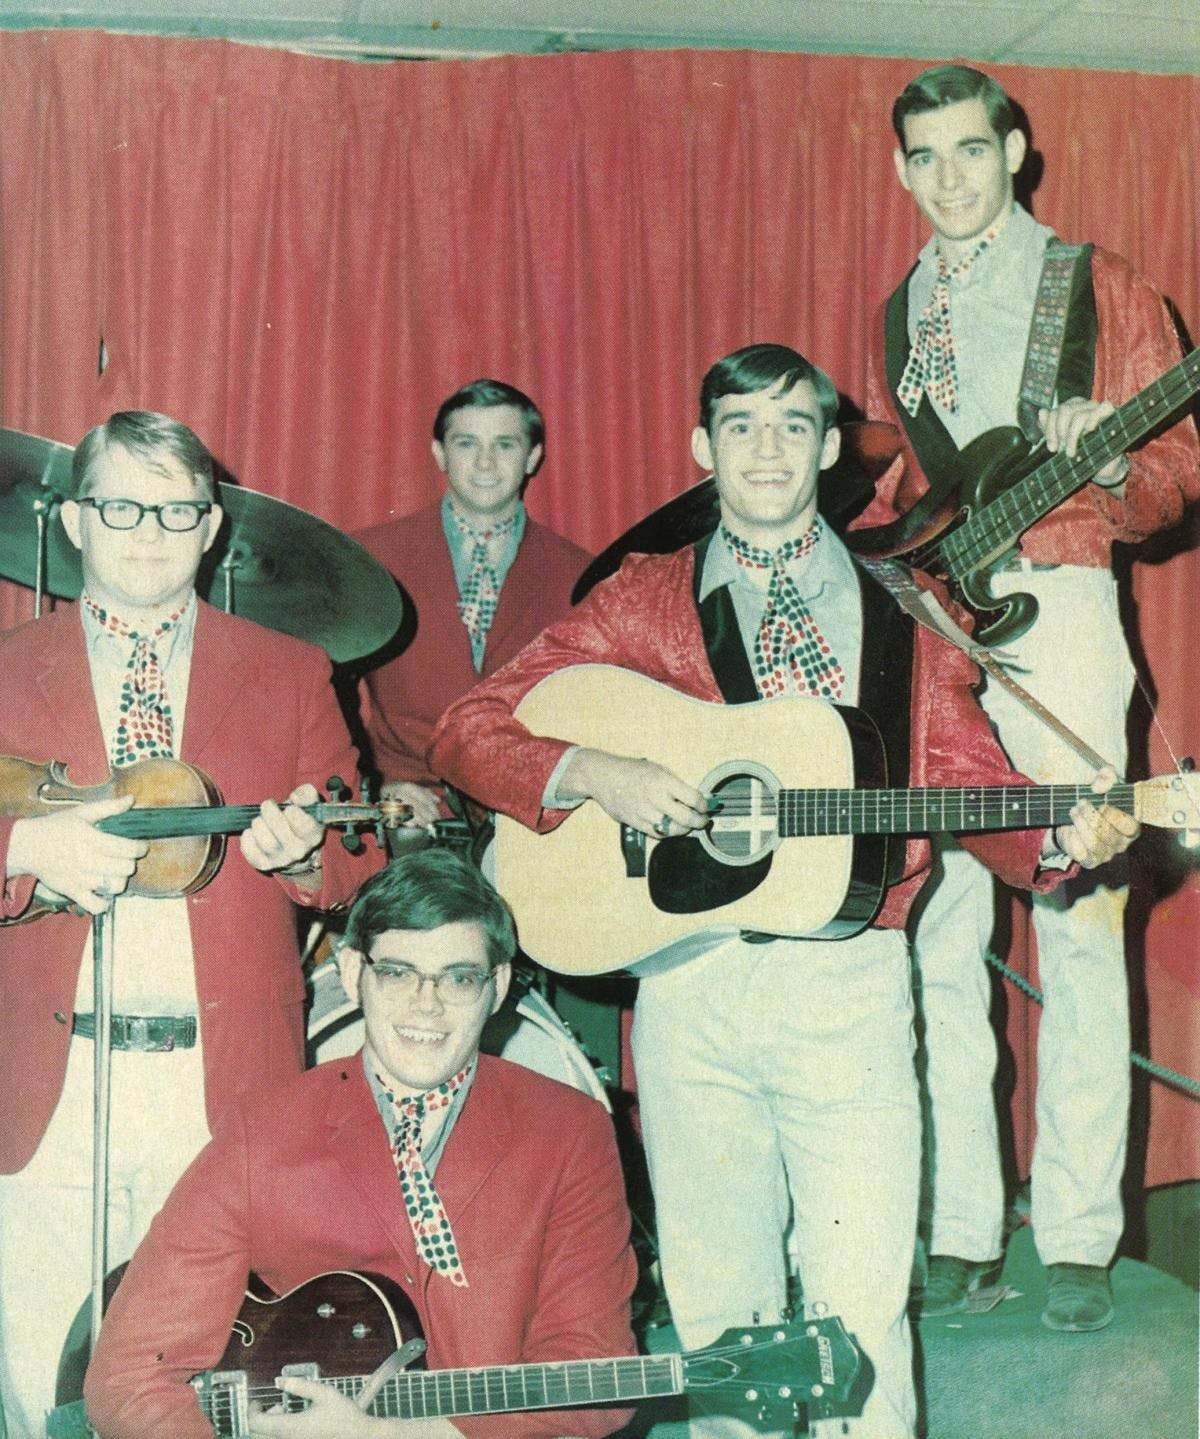 1969: The new Maines Brothers Band. From left, Joe Stephenson, Lloyd Maines, John Dwyer, Steve Maines, Kenny Maines.